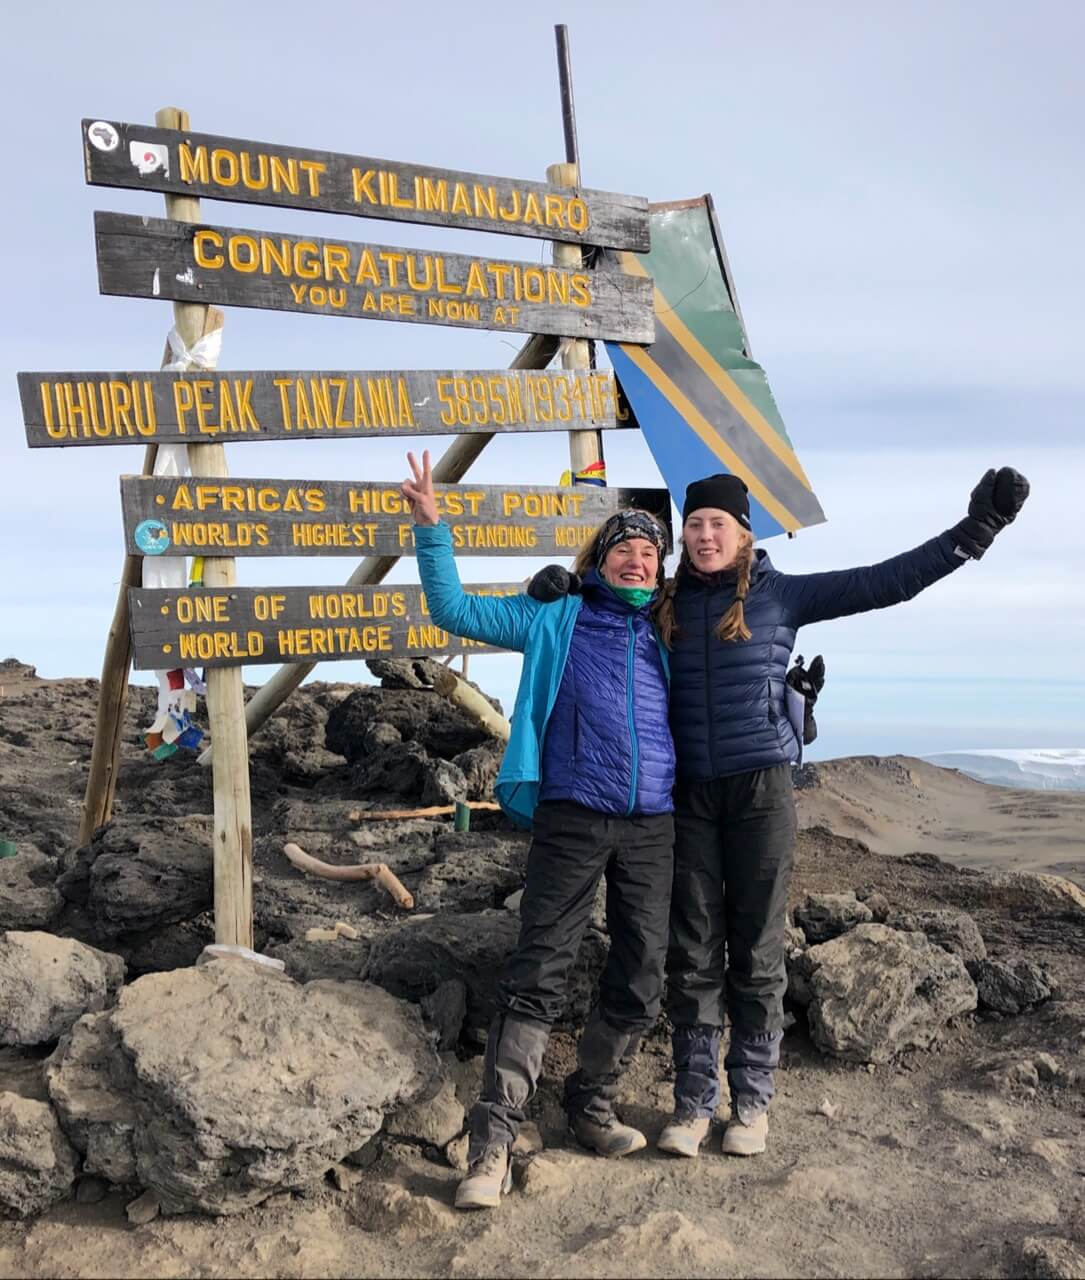 Mount Kilimanjaro is 'cherry on the cake' and needs to remain natural